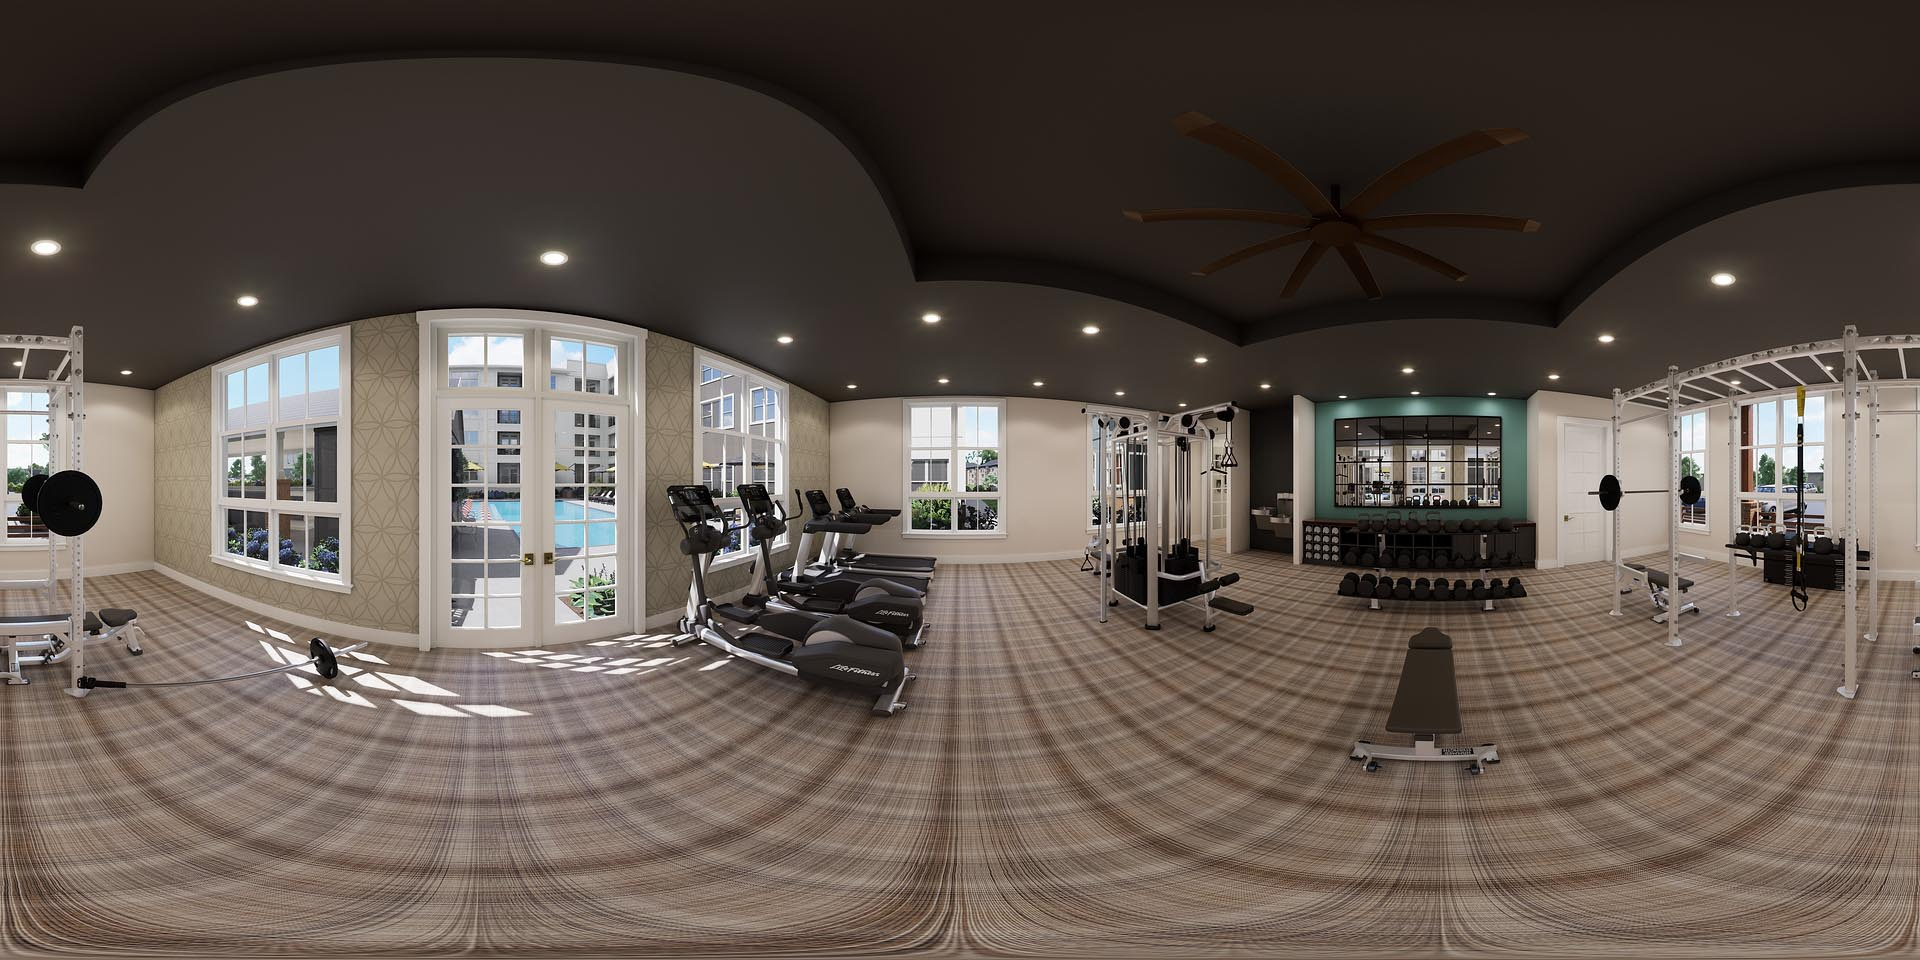 A 360 rendering of a fitness center